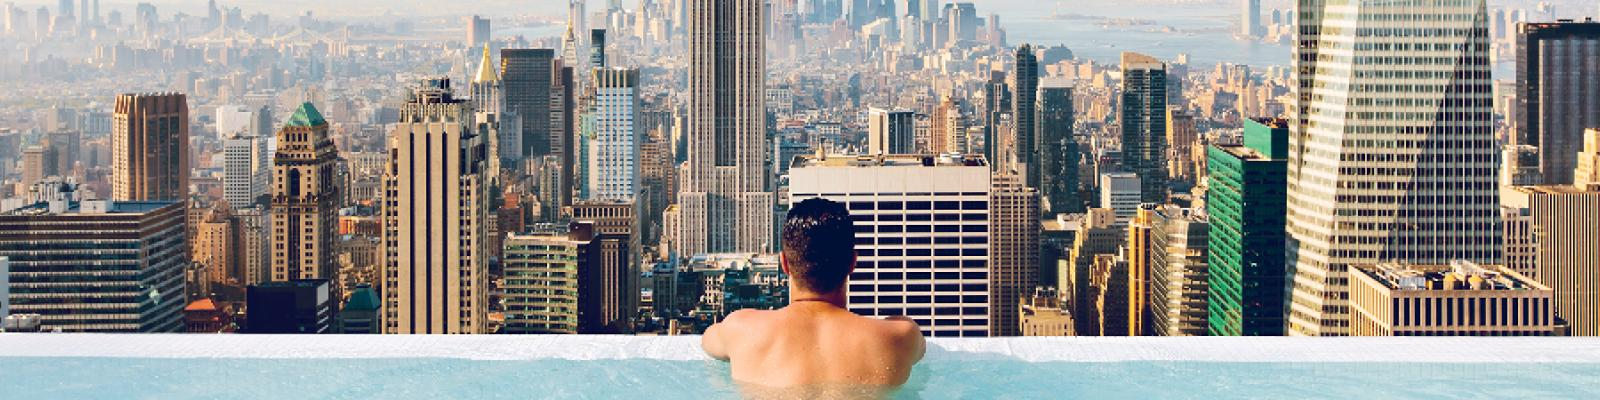 man in swimming pool overlooking city view